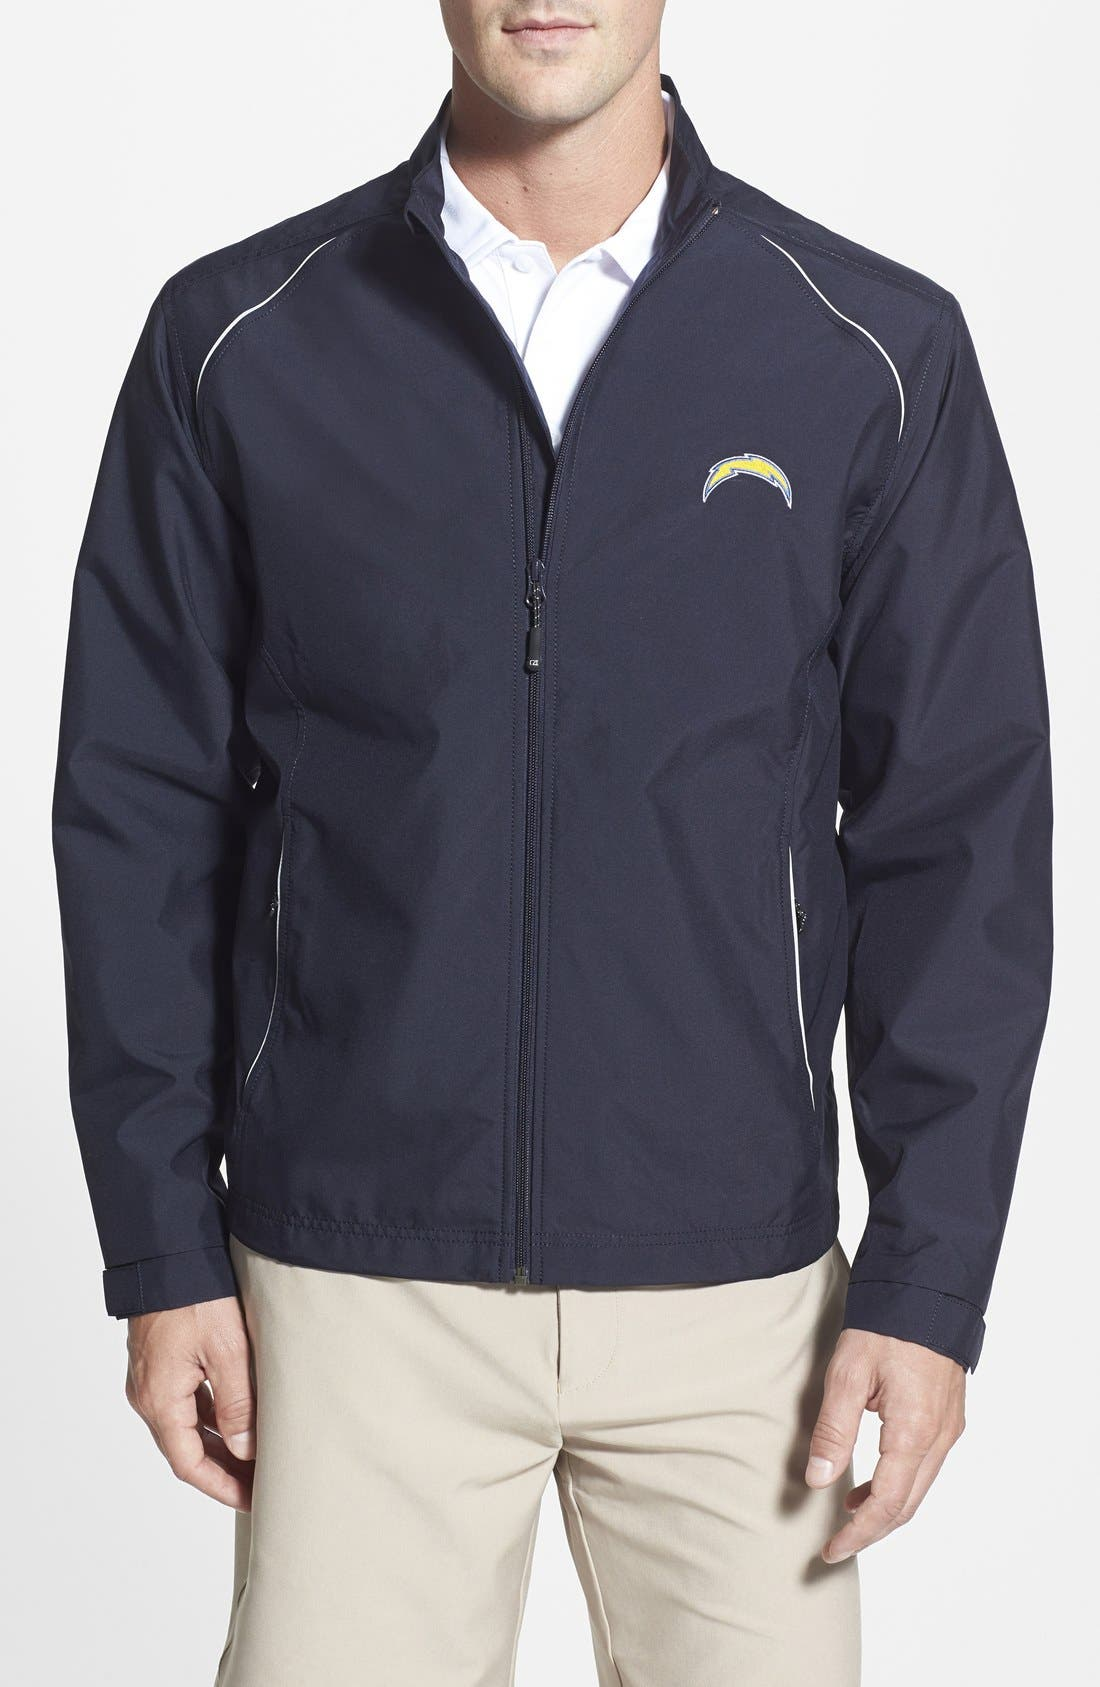 Cutter & Buck San Diego Chargers - Beacon WeatherTec Wind & Water Resistant Jacket